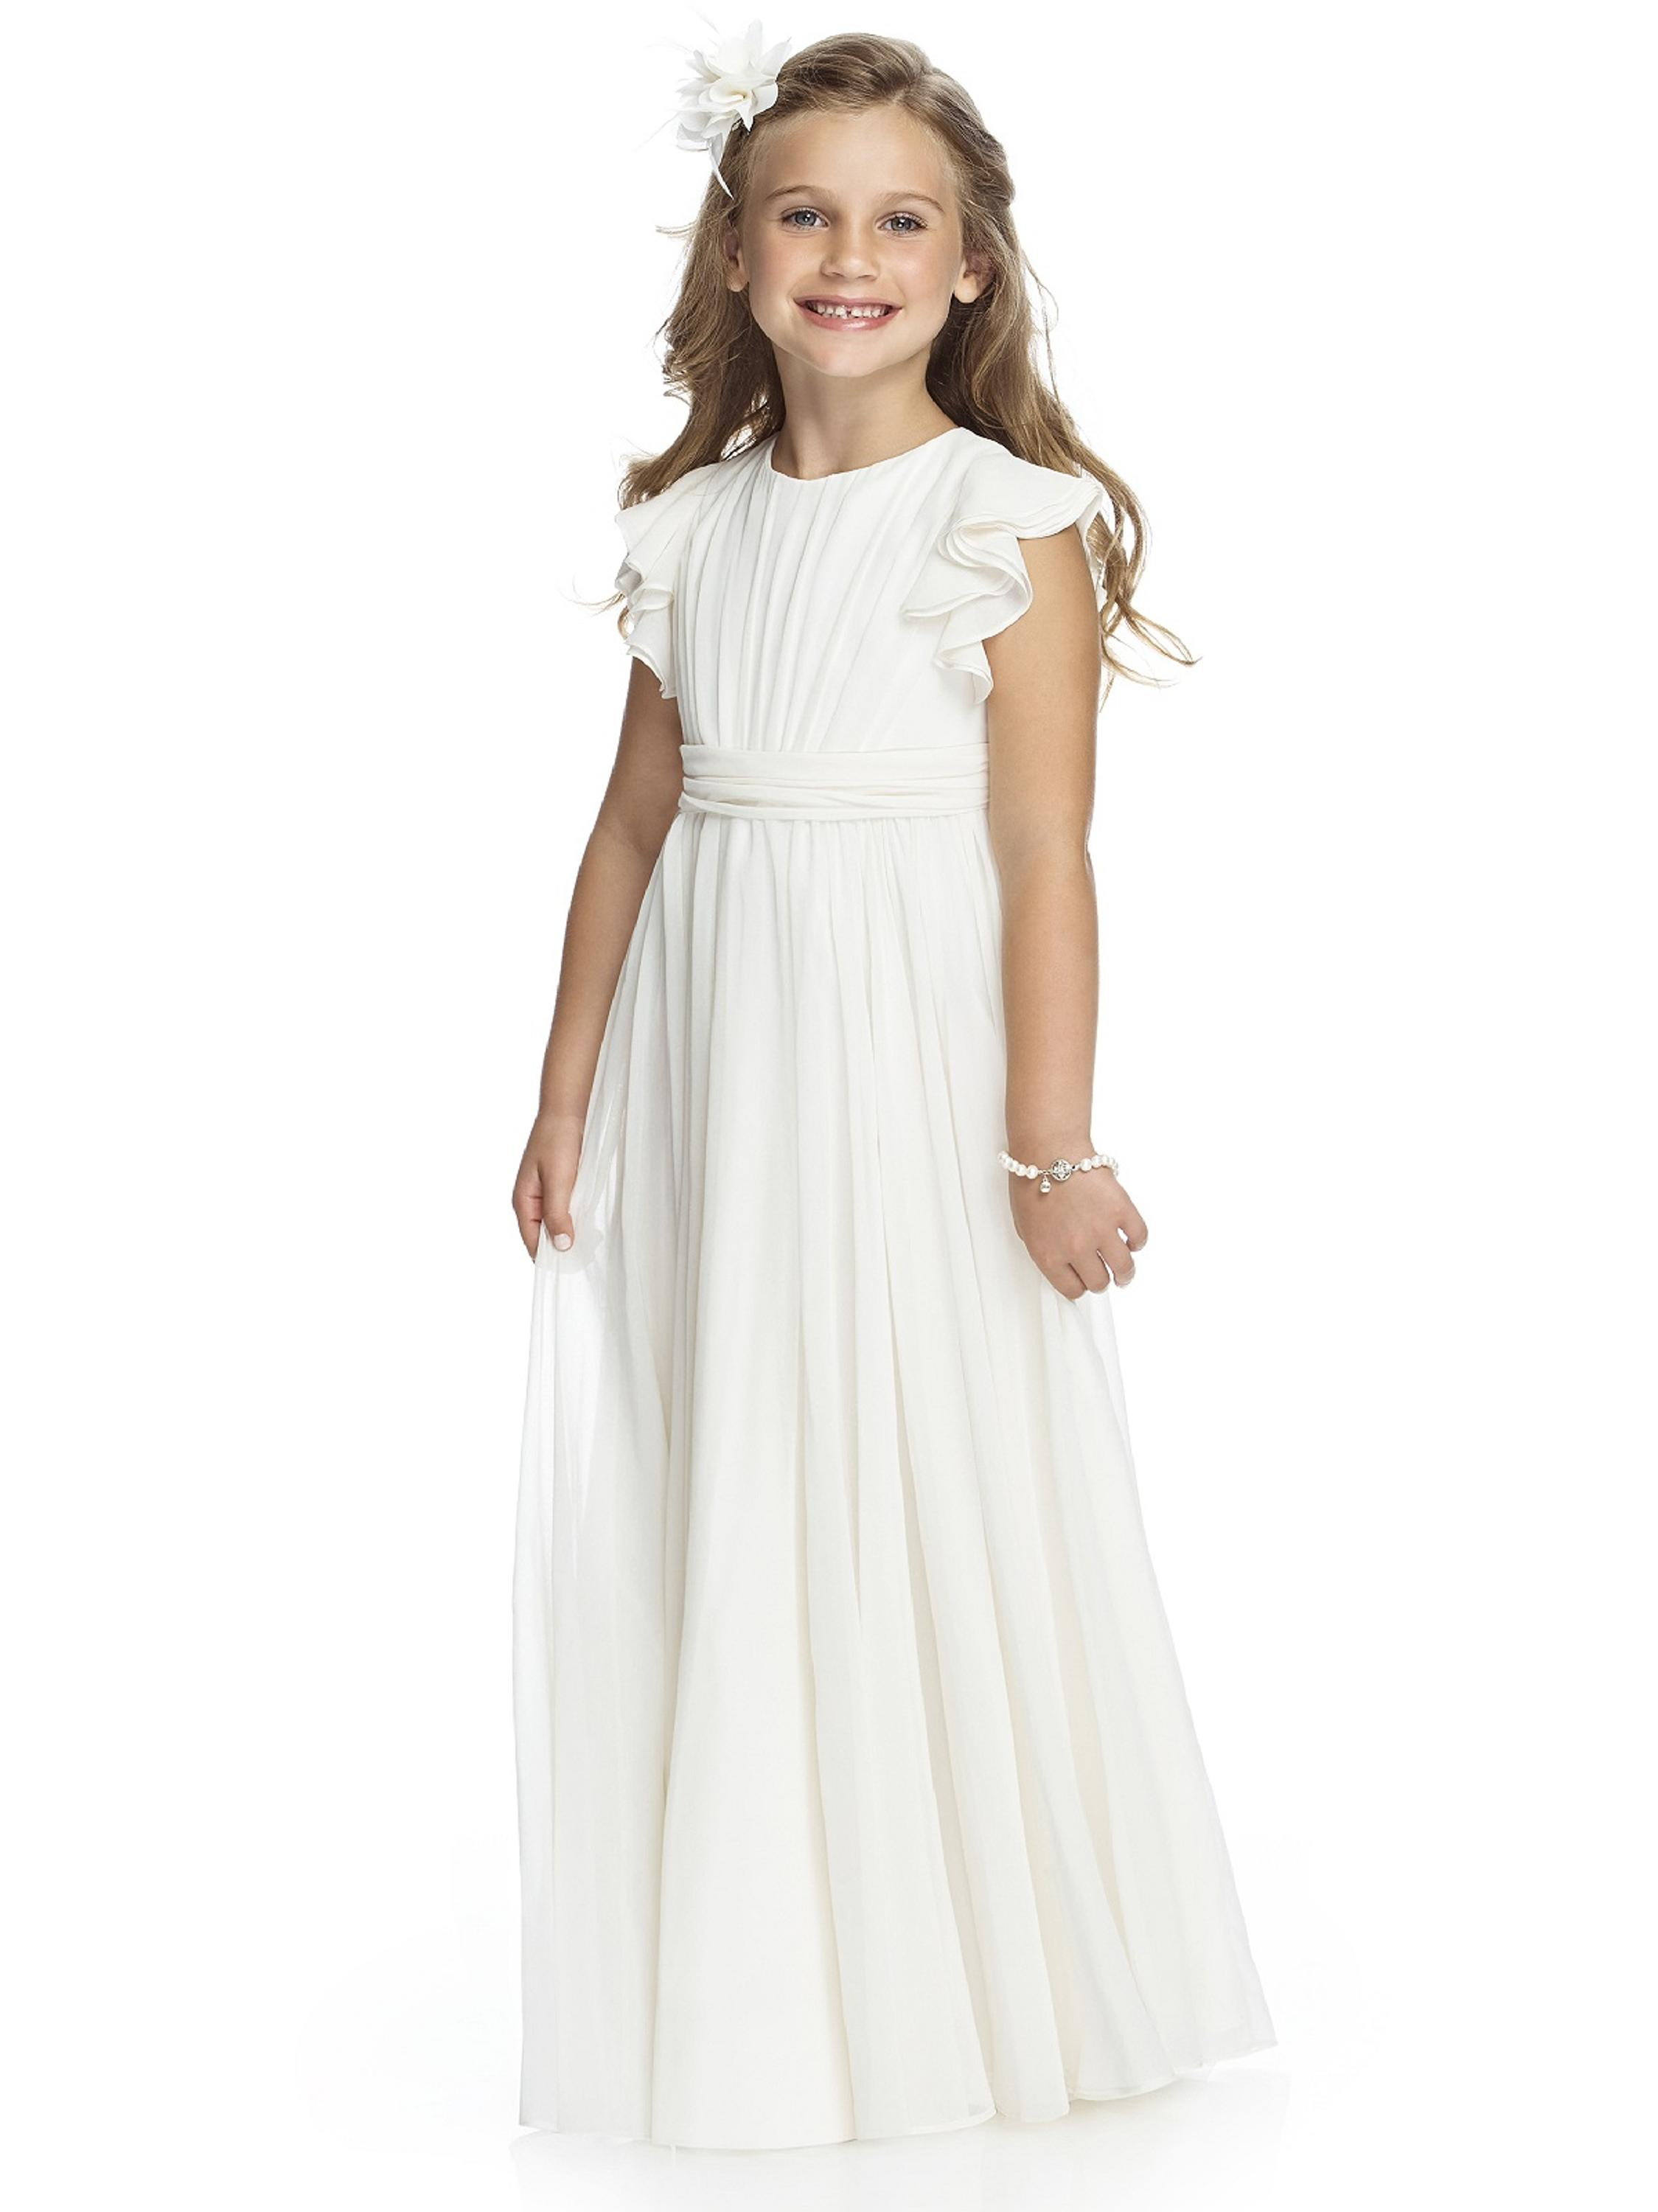 ФОТО Chiffon Flower Girls Dresses For Wedding Gowns White Girl Birthday Party Dress Free Shipping Flower Girl Dresses